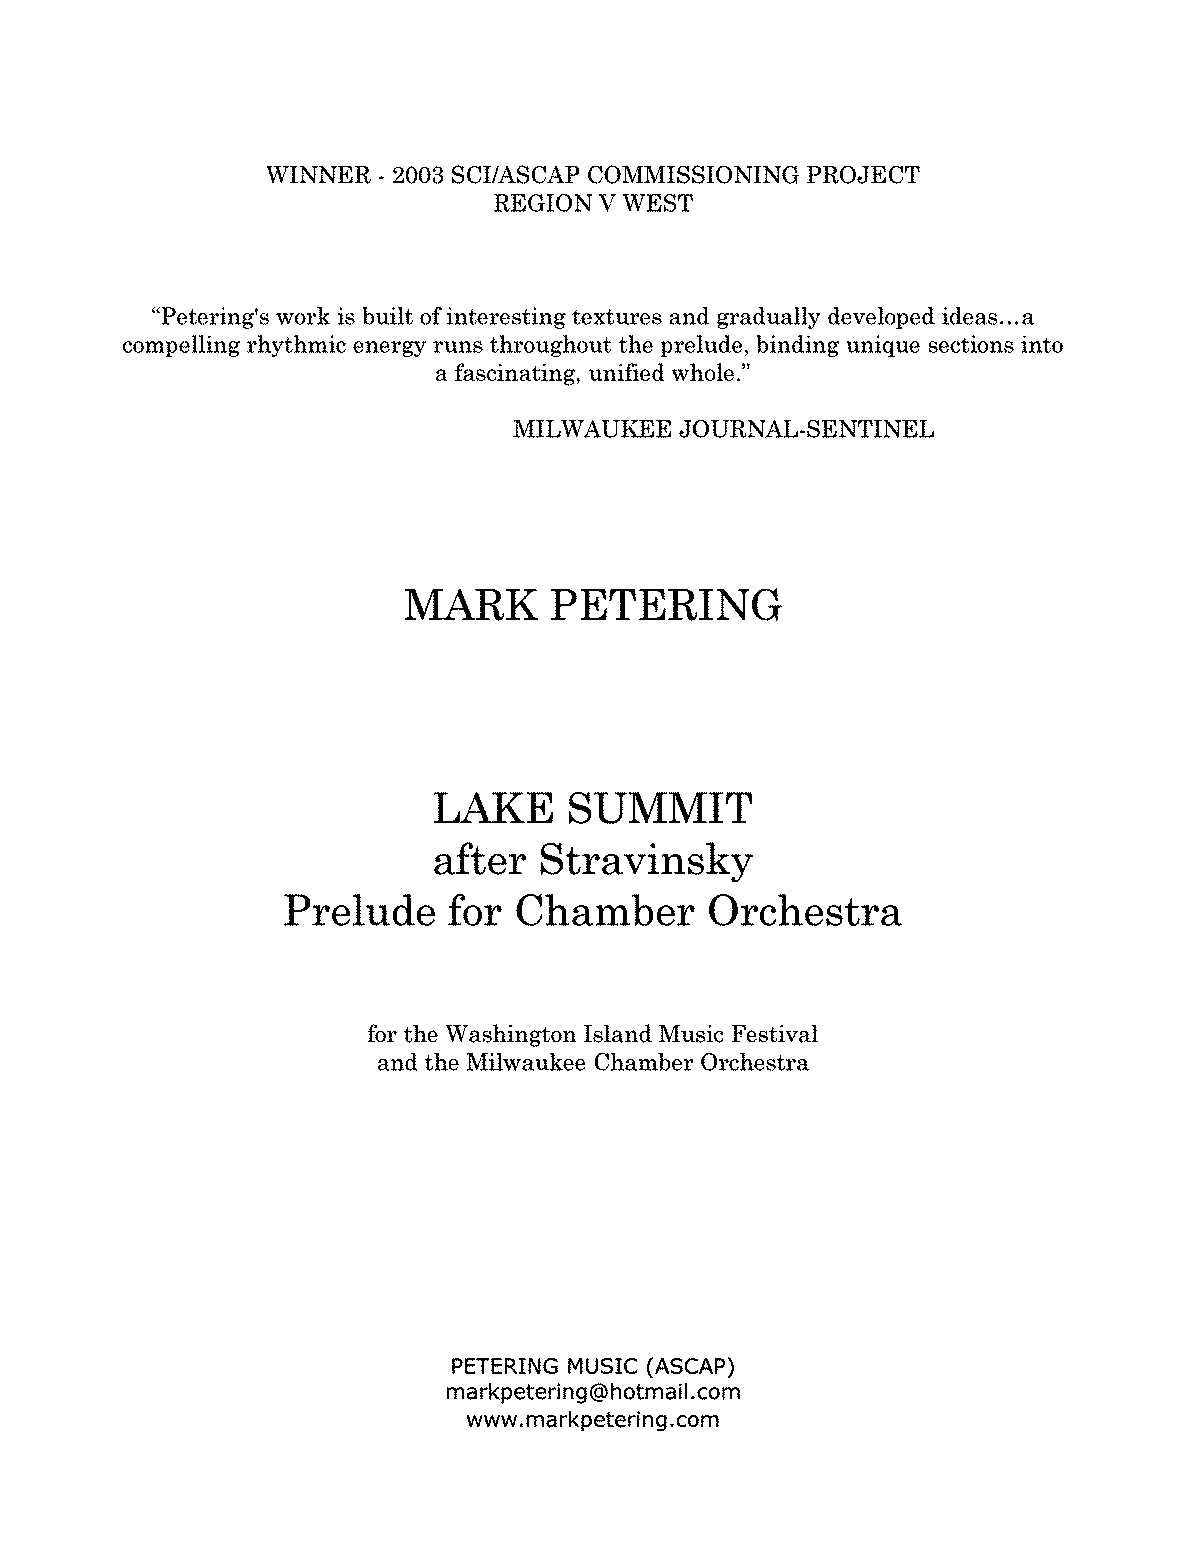 PMLP456435-Lake Summit final07 short version VERDANA2 imslp.pdf